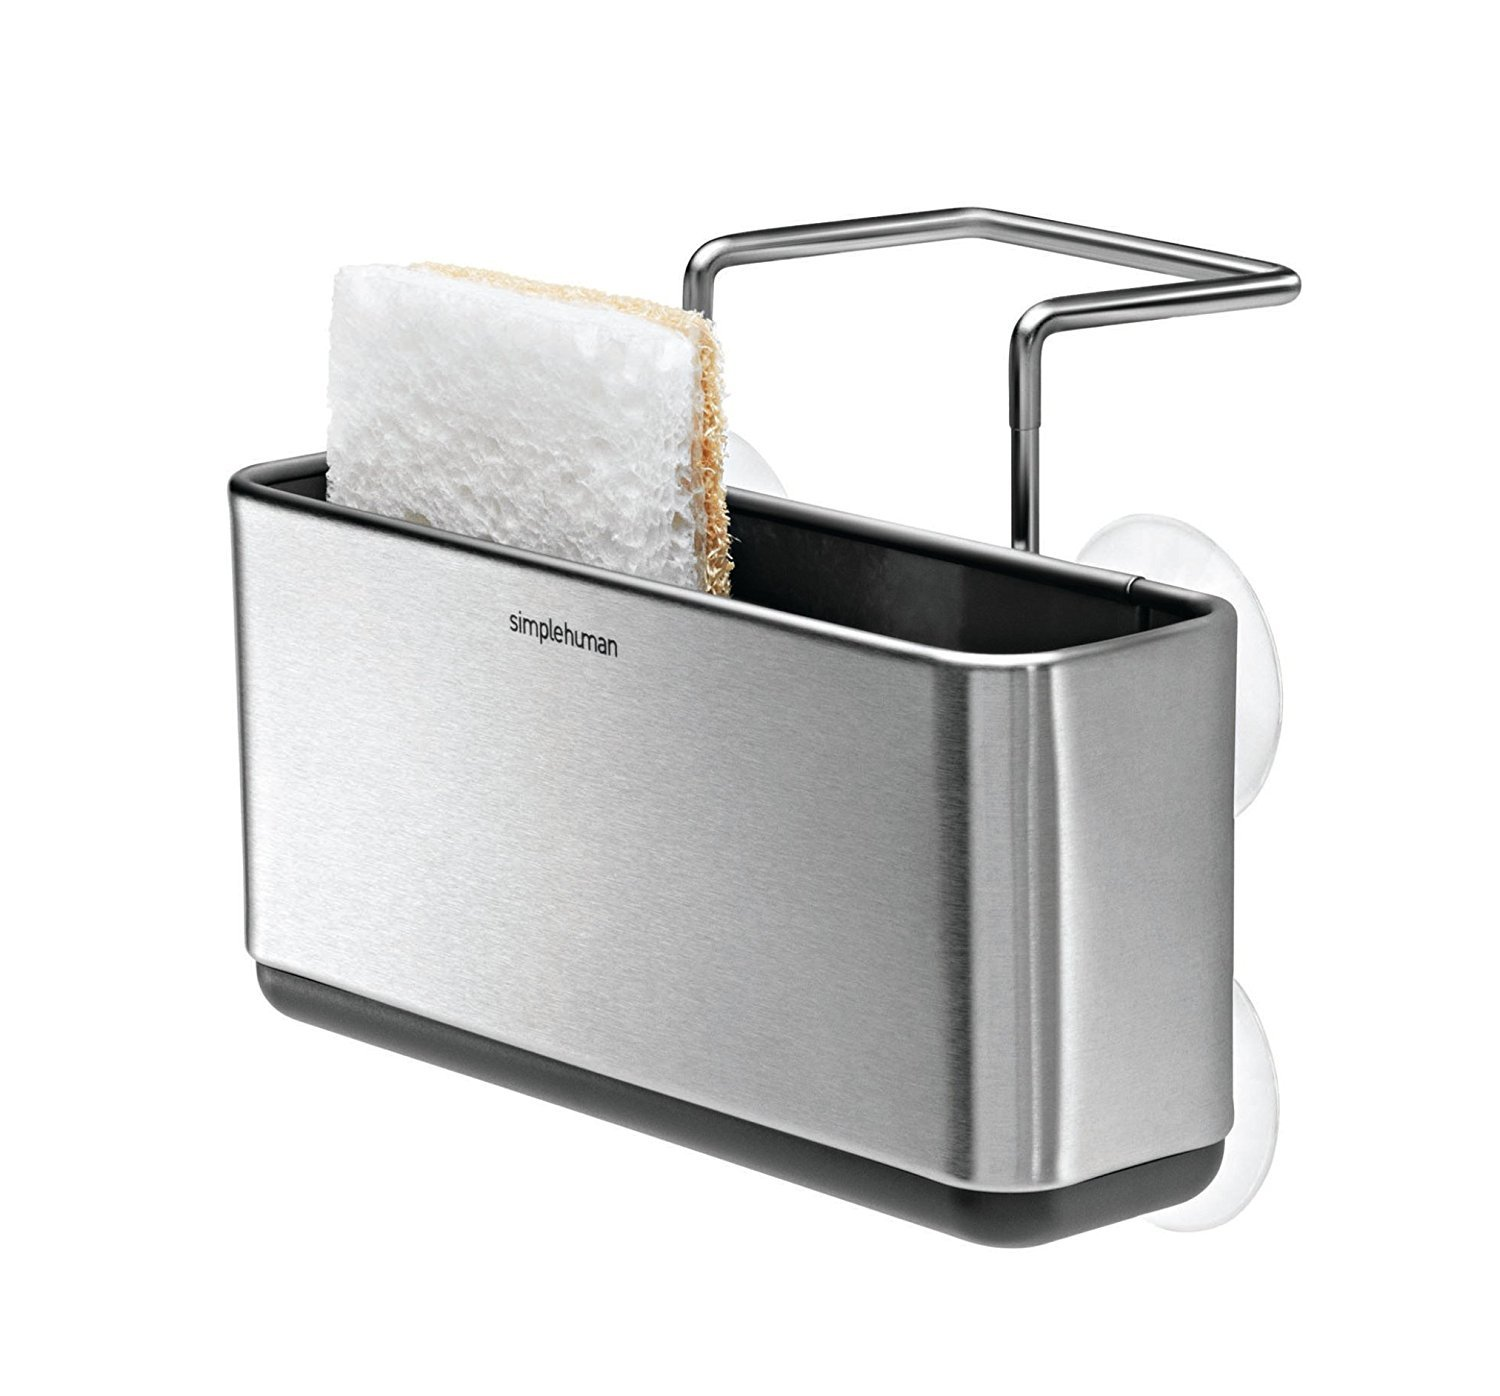 simplehuman Slim Sink Caddy, Brushed Stainless Steel KT1134